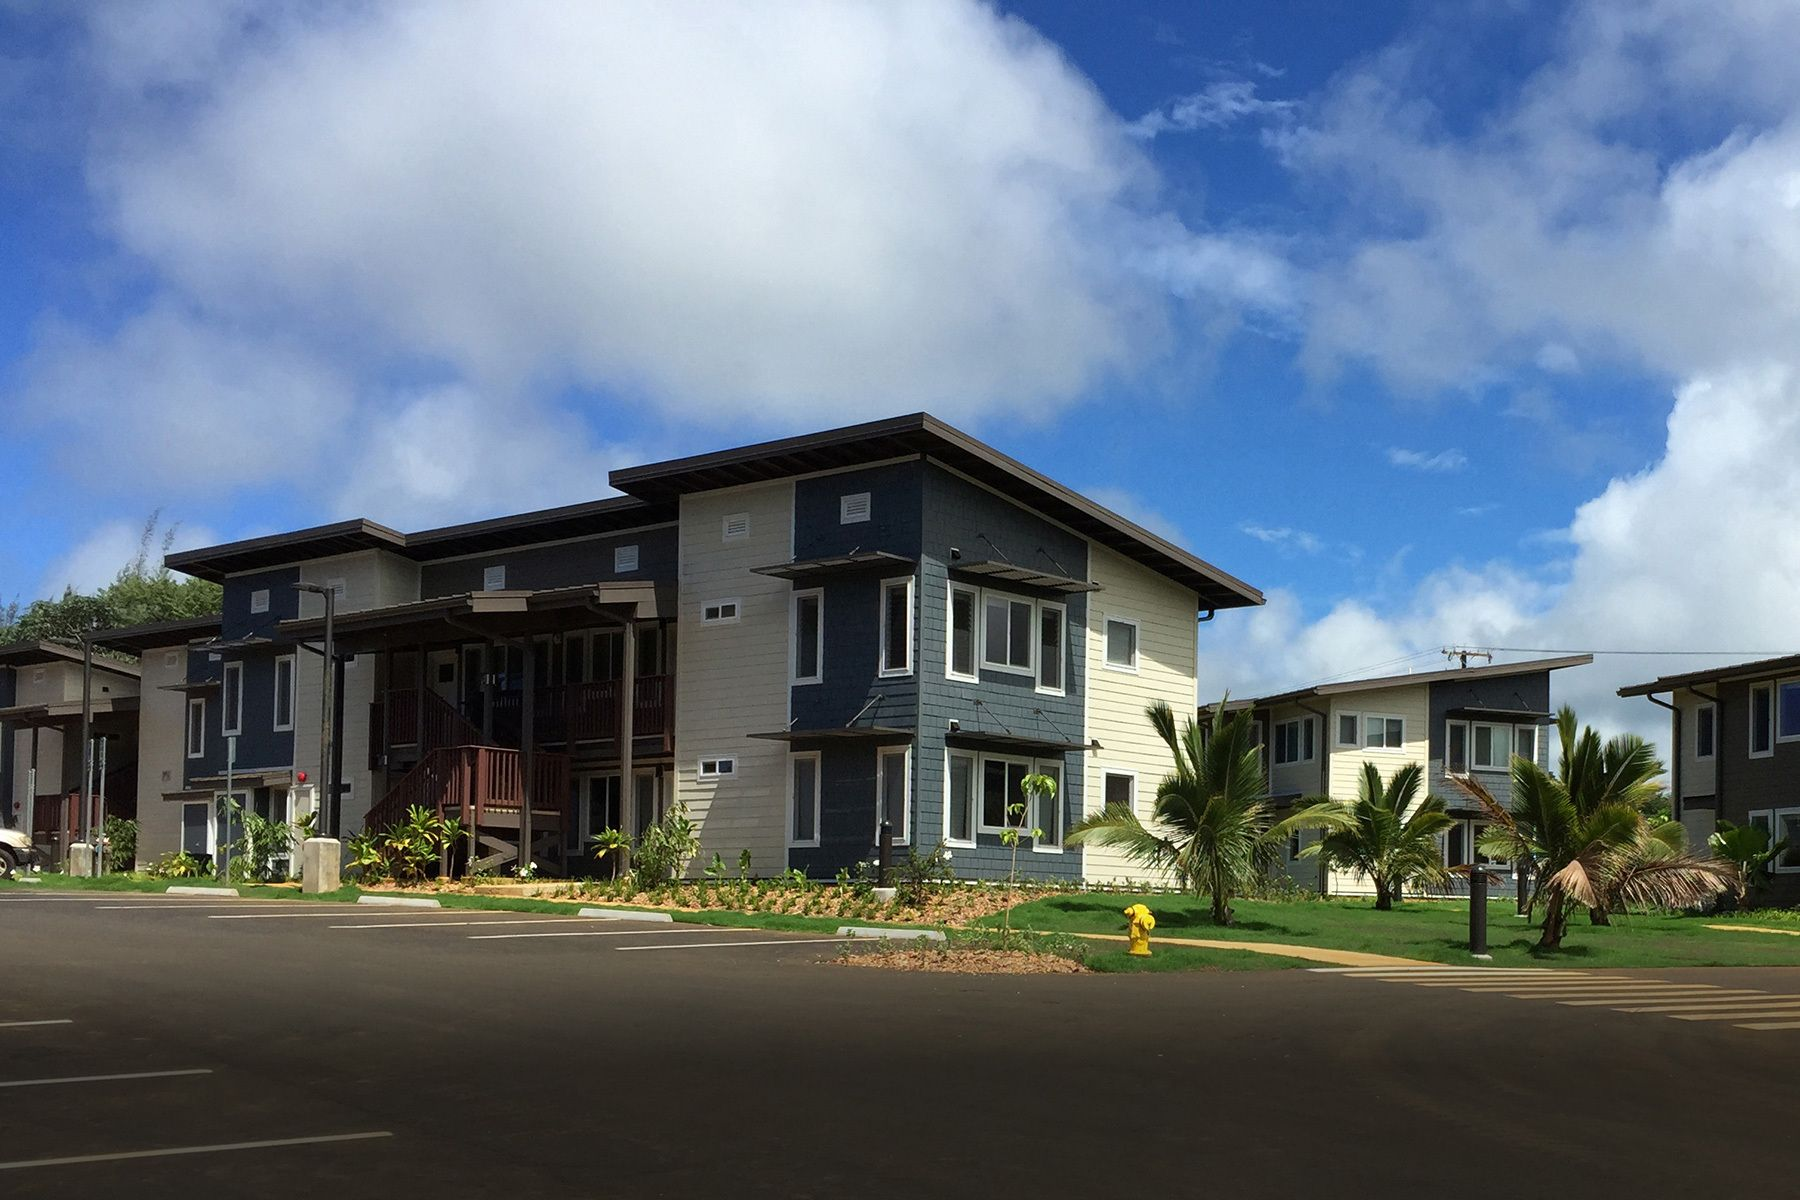 Kolopua Workforce Housing